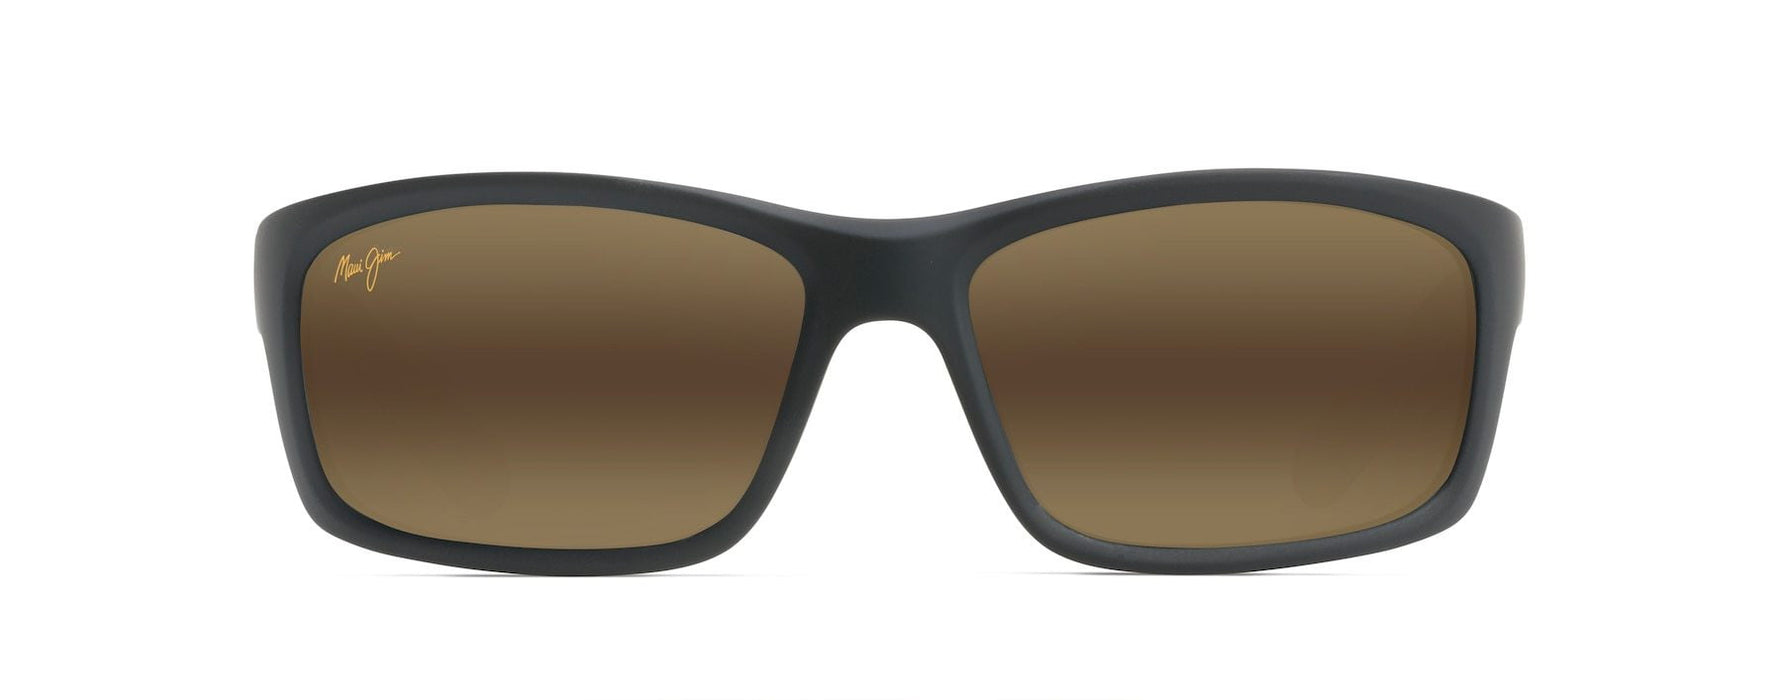 MyMaui Kanaio Coast MM766-001 Sunglasses